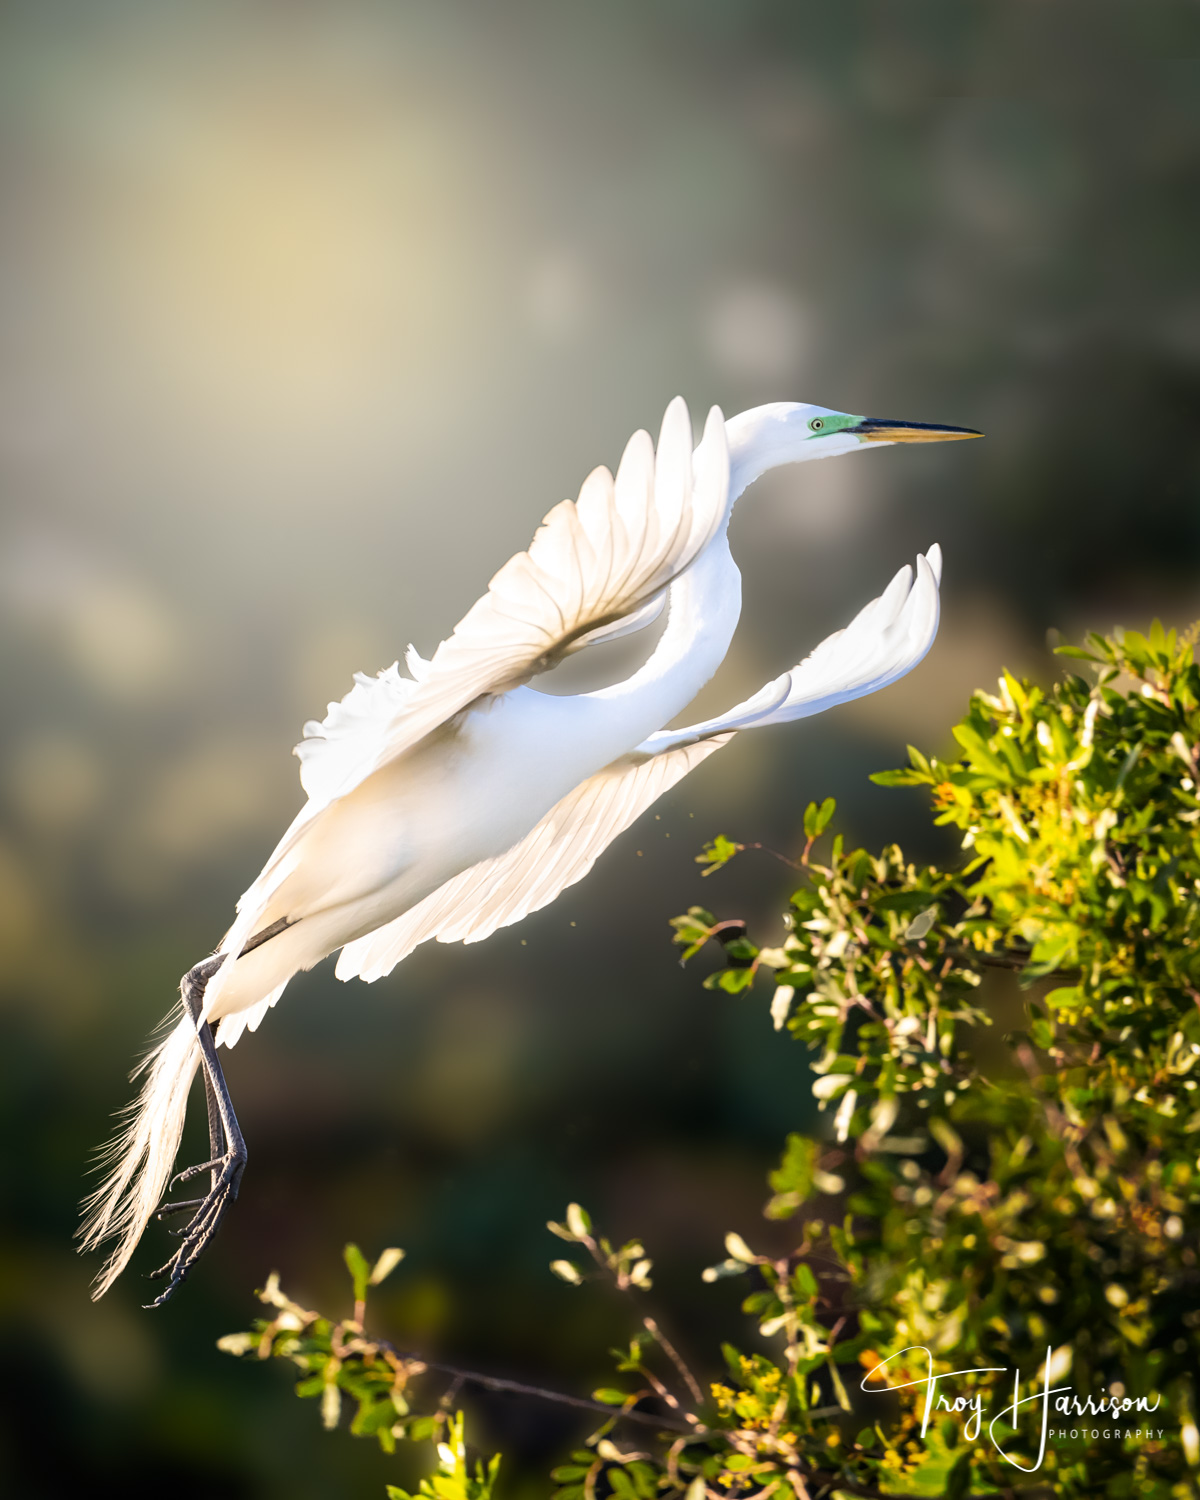 1 - Great Egret, Everglades, Jan. II 2019, img 371.jpg